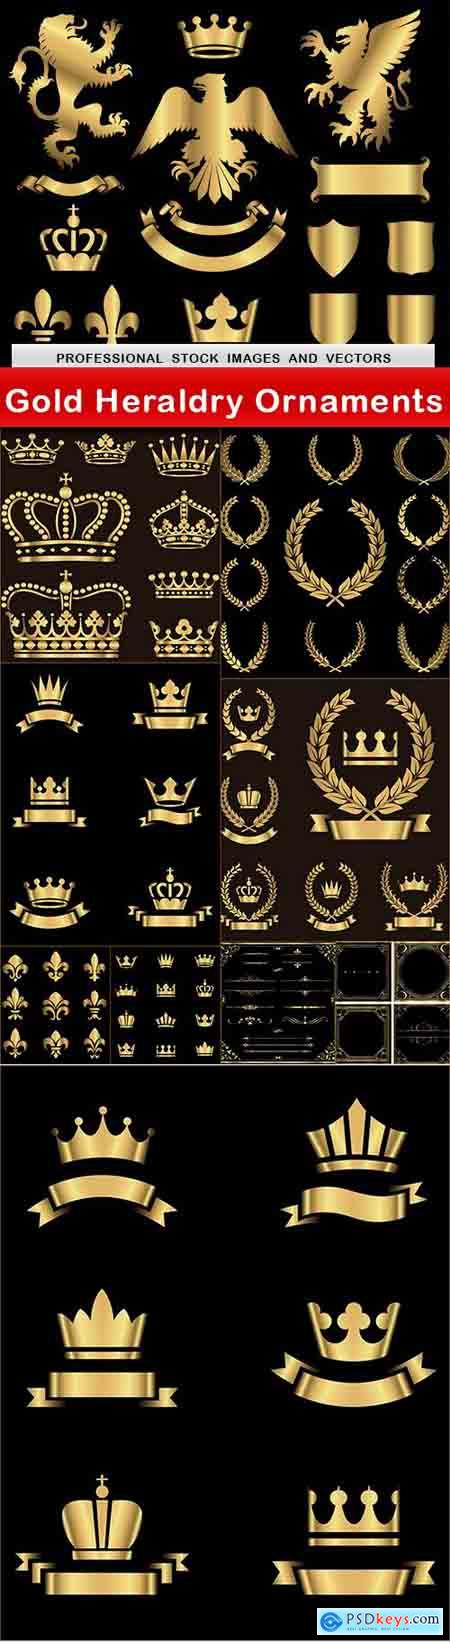 Gold Heraldry Ornaments - 10 EPS